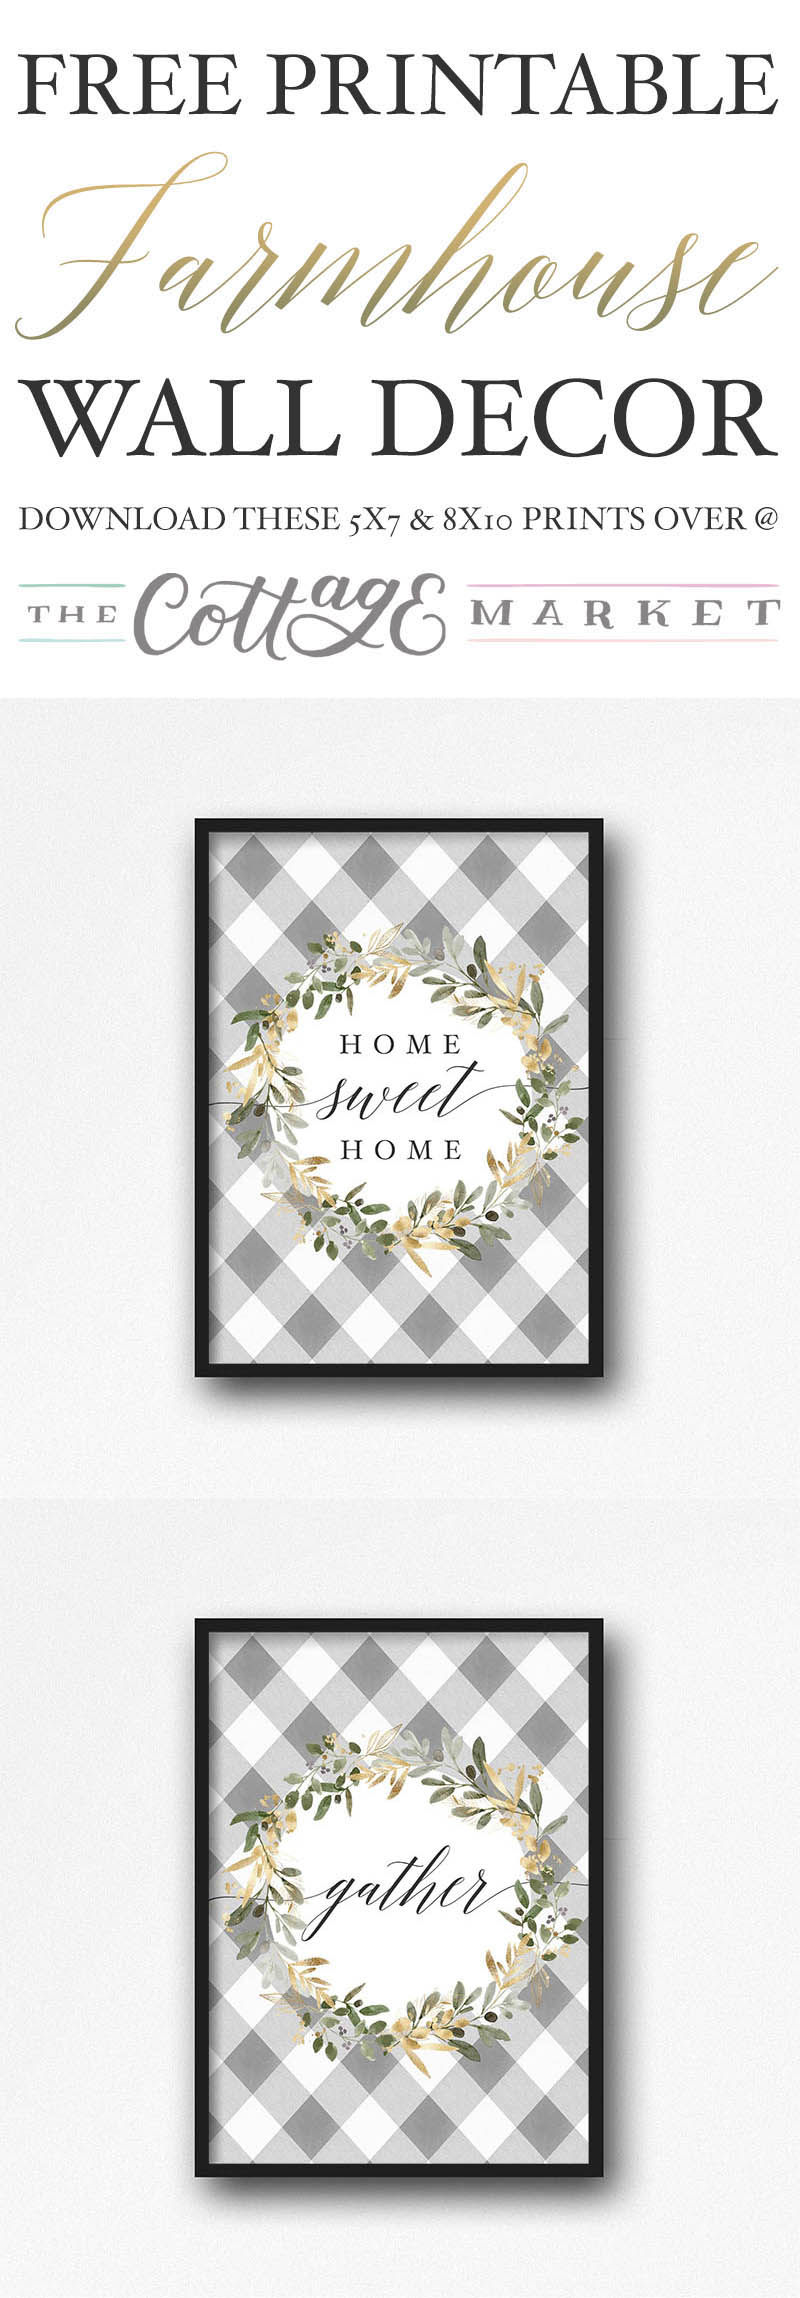 We have Free Printable Farmhouse Wall Decor for you today that will add a touch of Fresh Farmhouse Charm to any space you hang it in.  It's Wall Art for all Seasons.